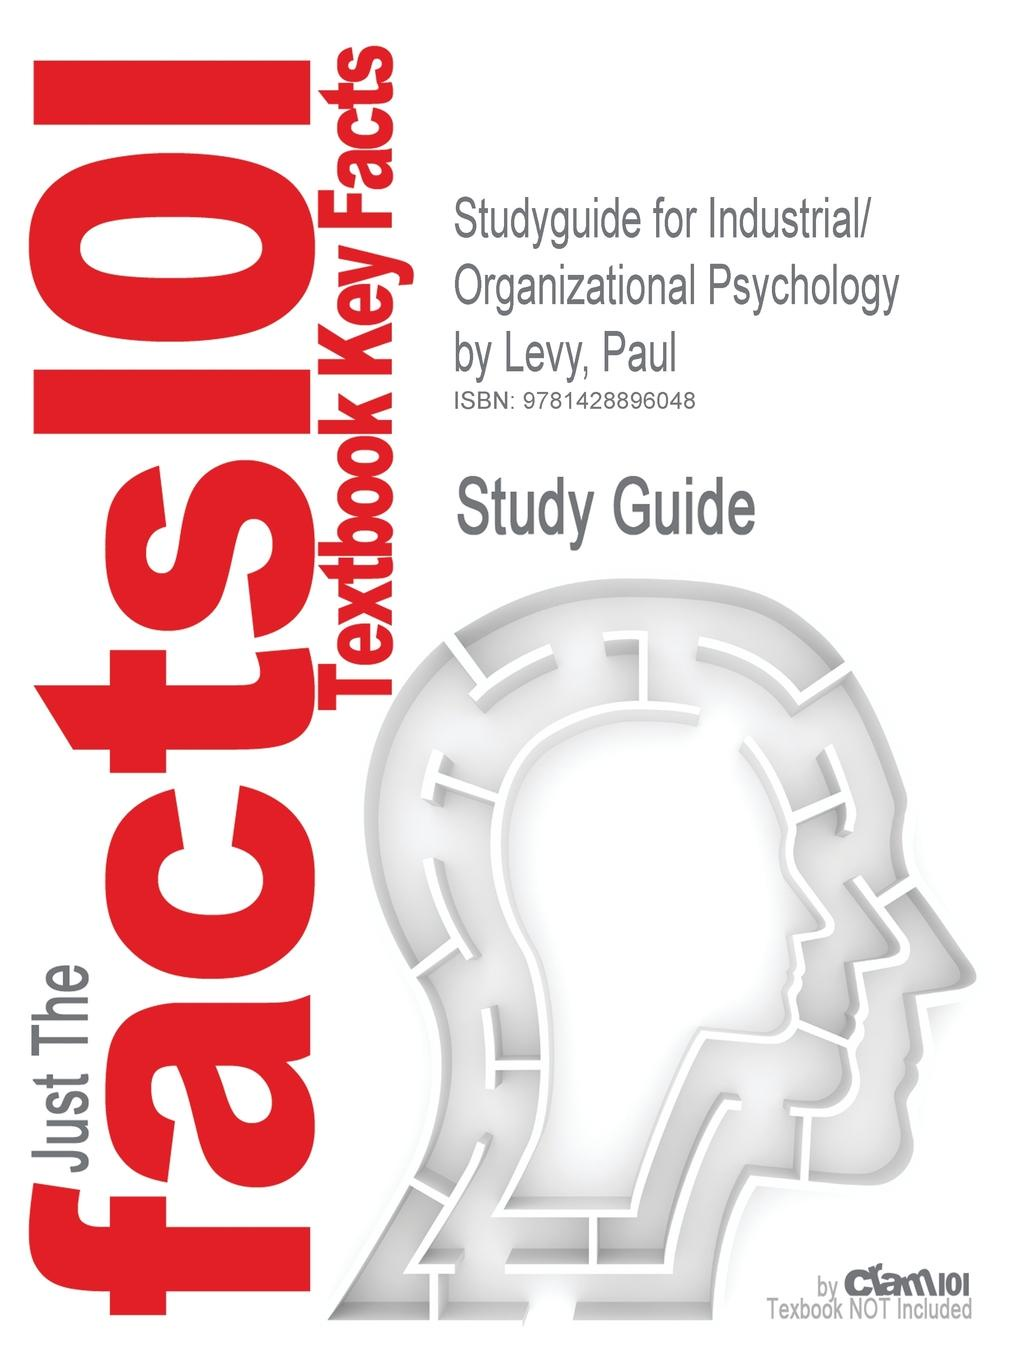 Cram101 Textbook Reviews Studyguide for Industrial/ Organizational Psychology by Levy, Paul, ISBN 9781429223706